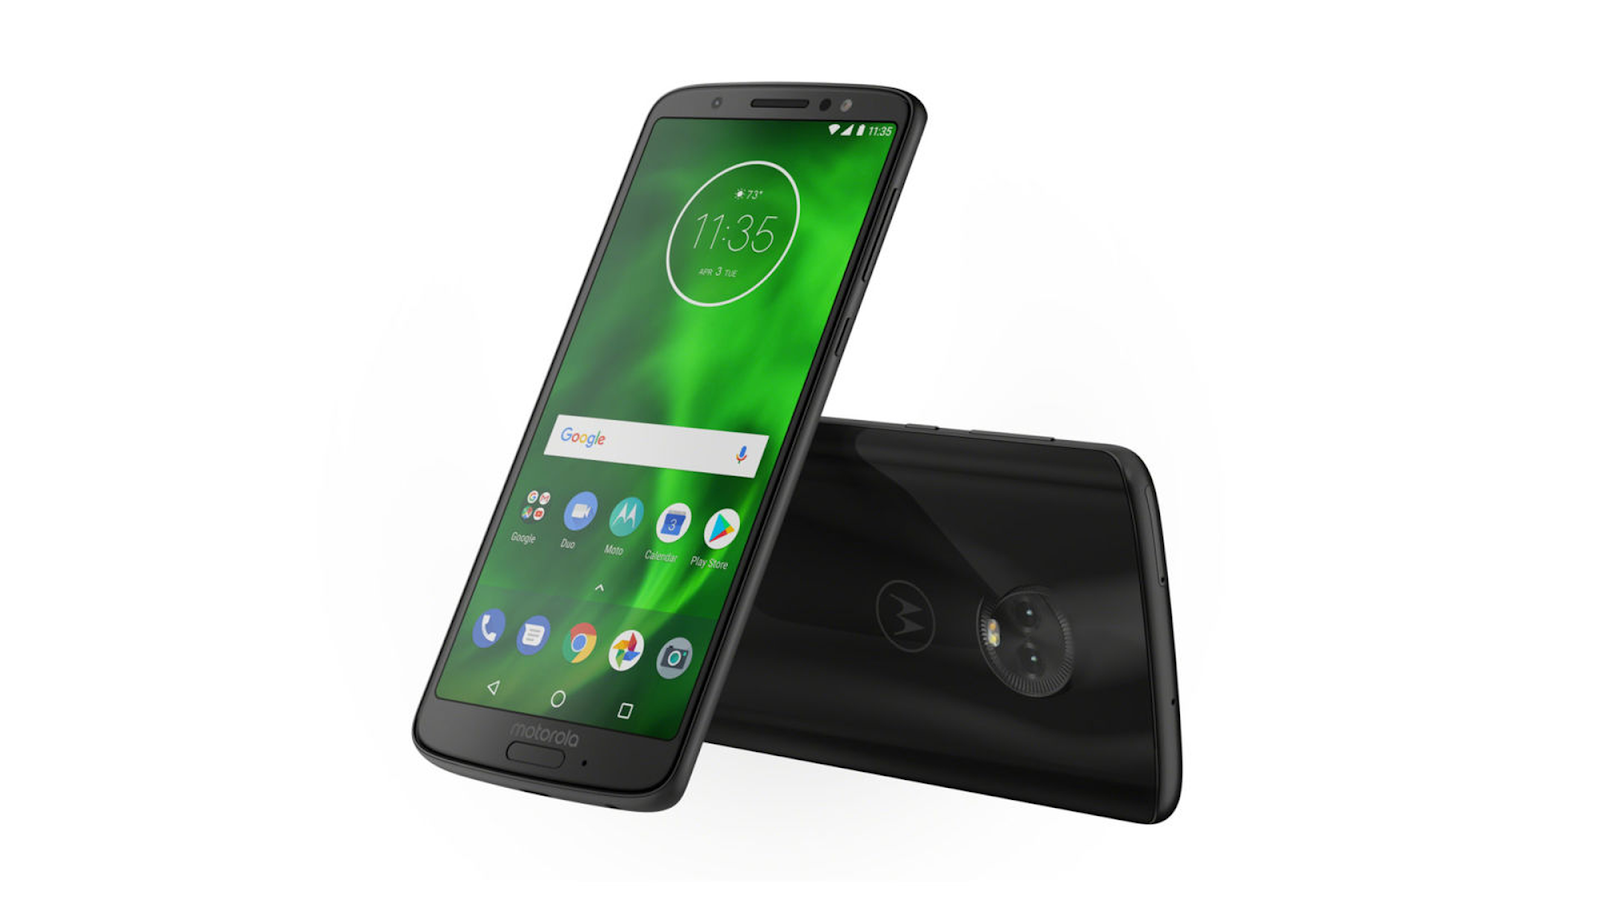 Moto G7 Power Will Have A Massive 5,000mAh Battery